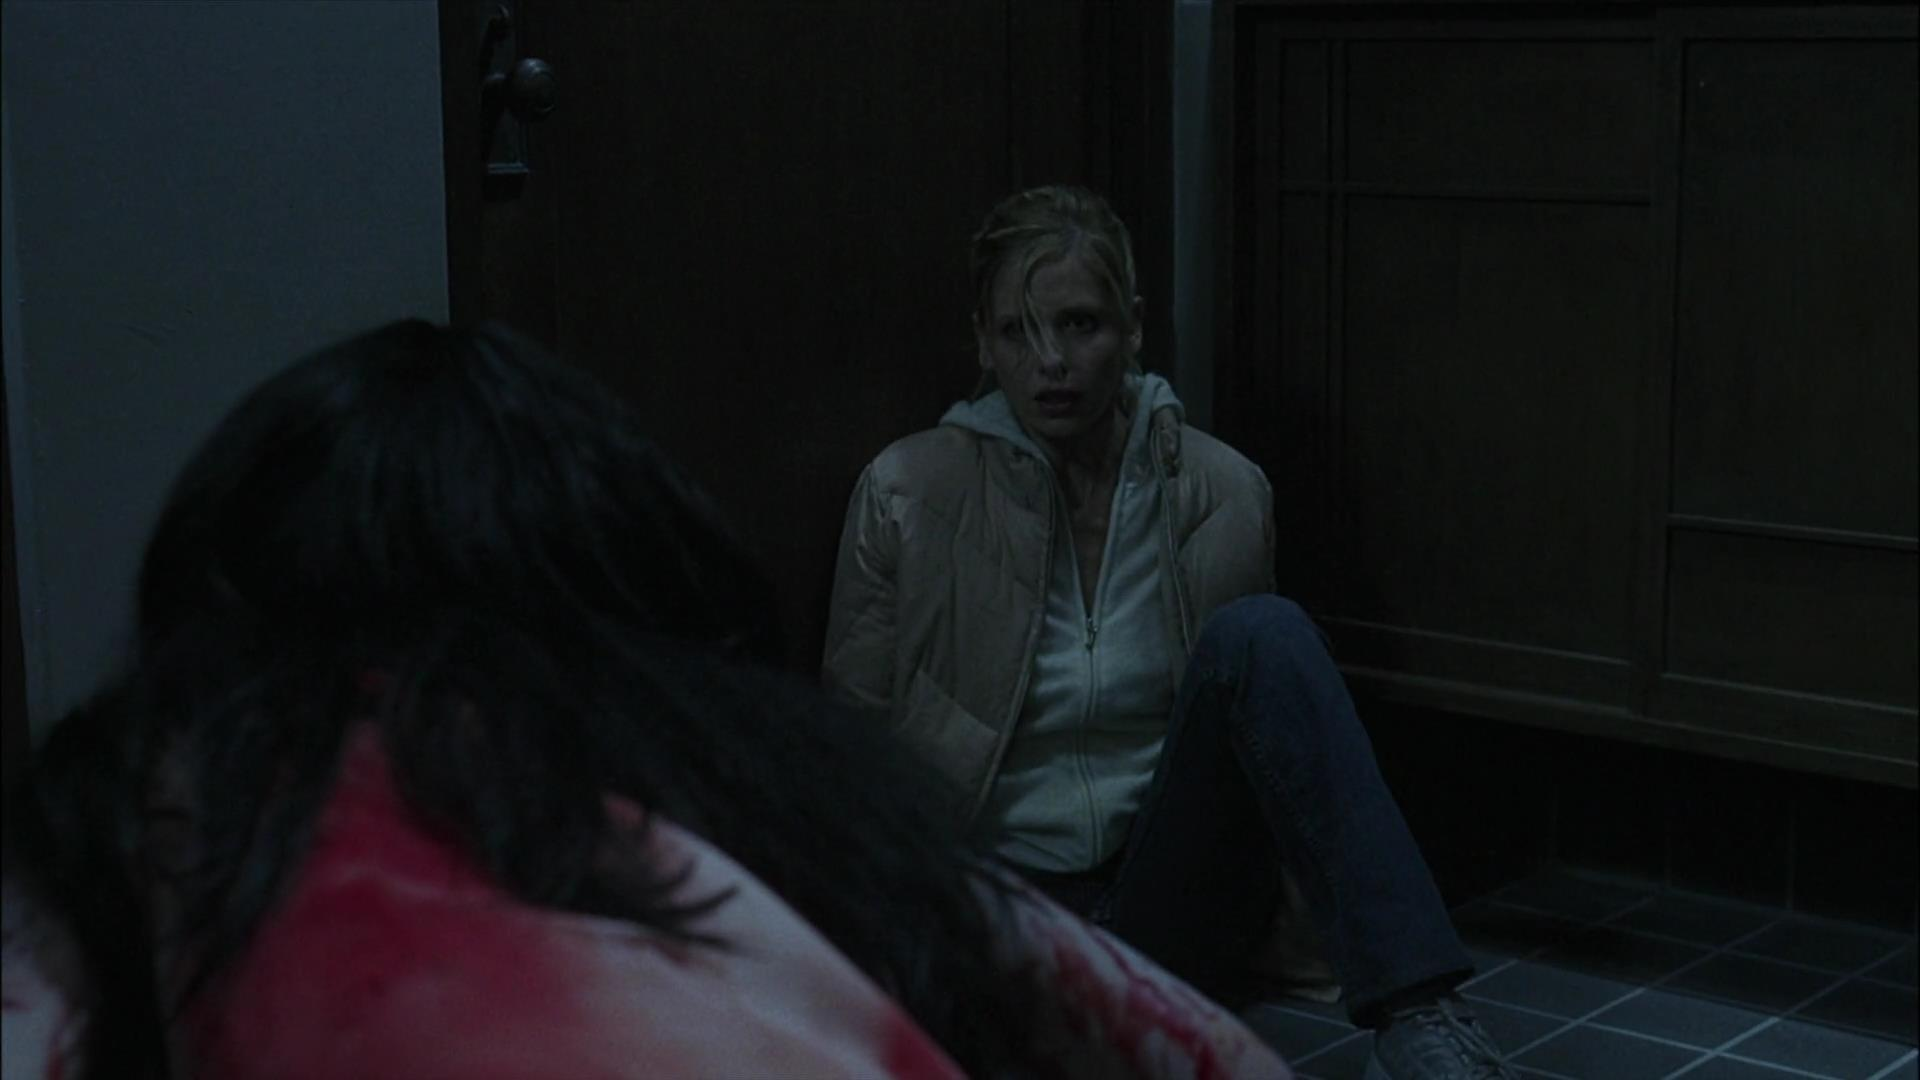 Sarah Michelle Gellar In The Grudge 2004 Horror Actresses Photo 43438316 Fanpop